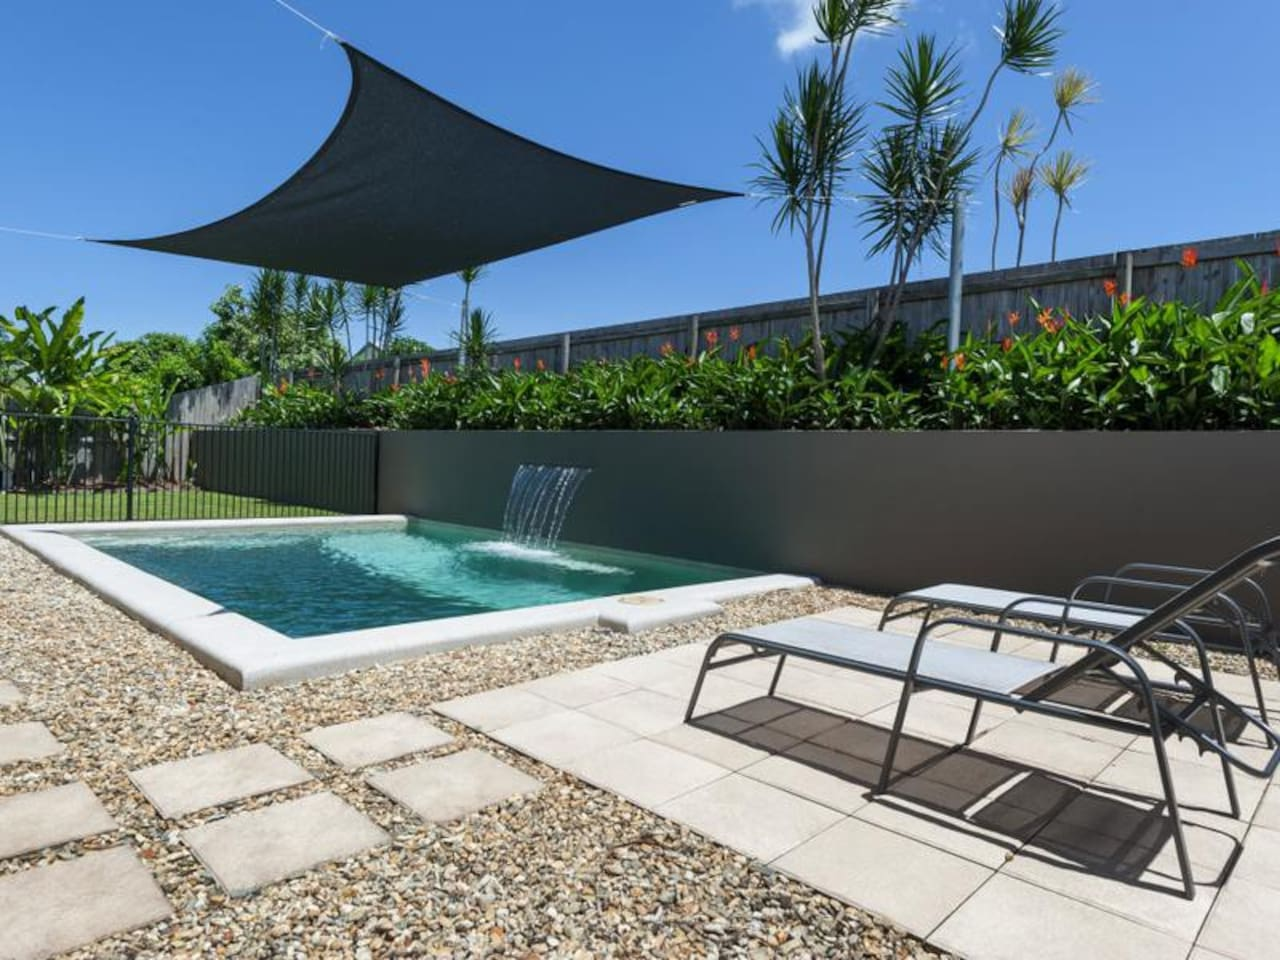 A deliciously cool swimming pool featuring a calming water feature make this outdoor space a very private oasis….a perfect entertainer or relaxing sanctuary.